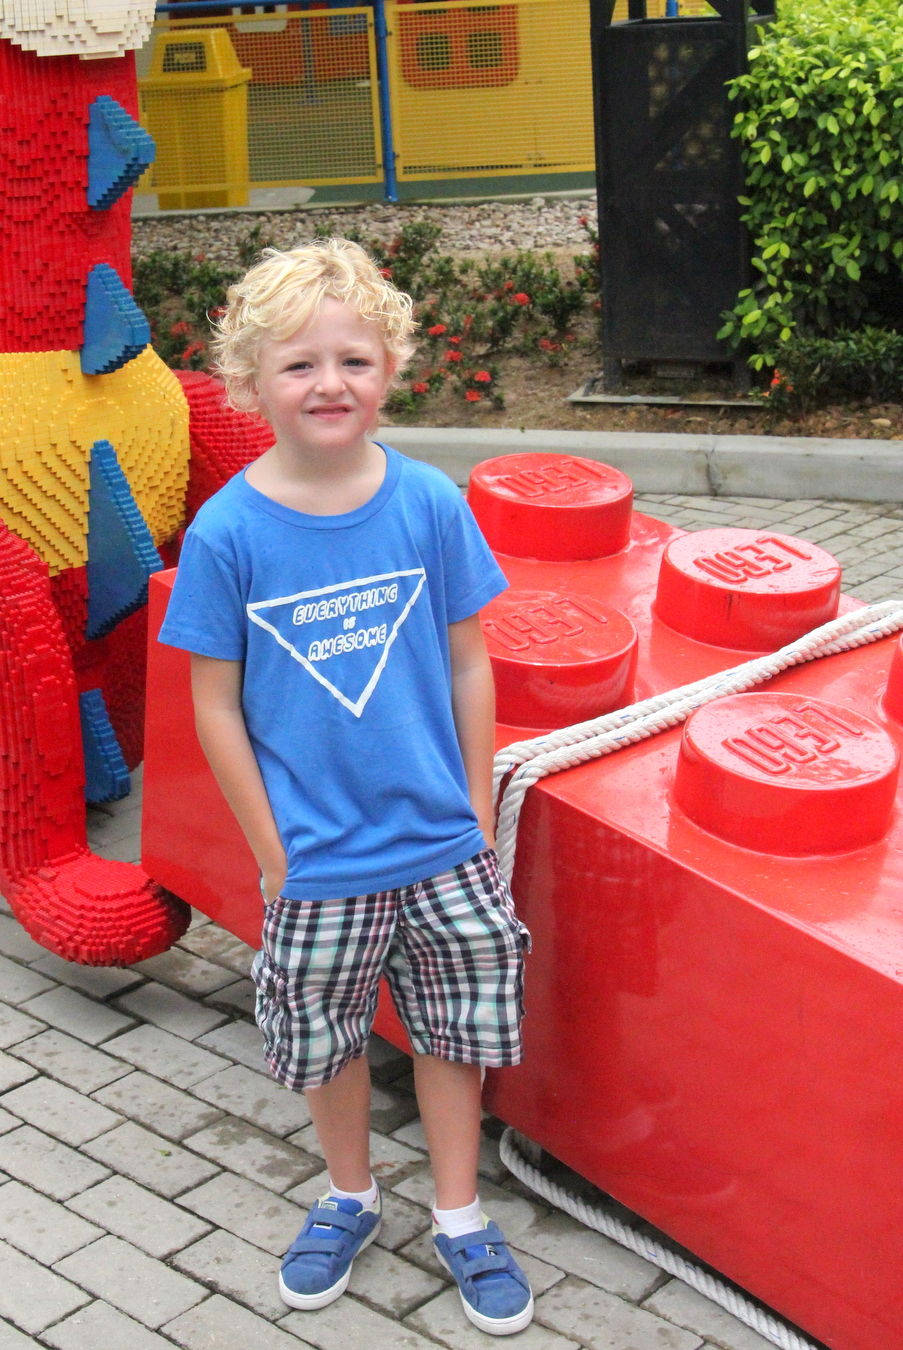 DIY 'everything is awesome' Lego shirt (with free printable template)